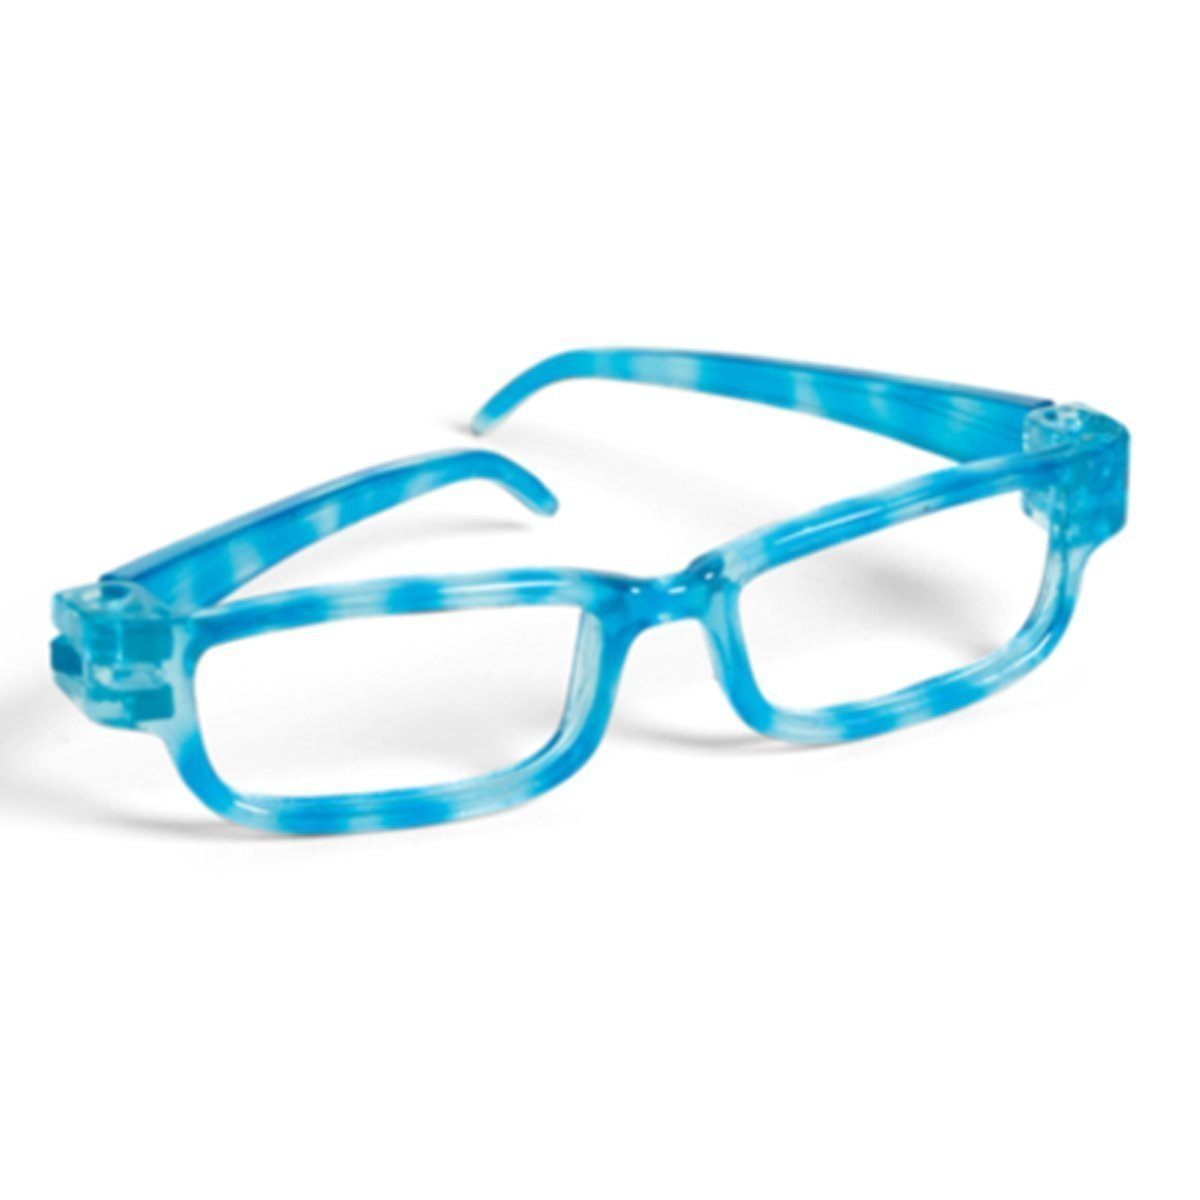 American Girl Turquoise Glasses for 18 Dolls by American Girl